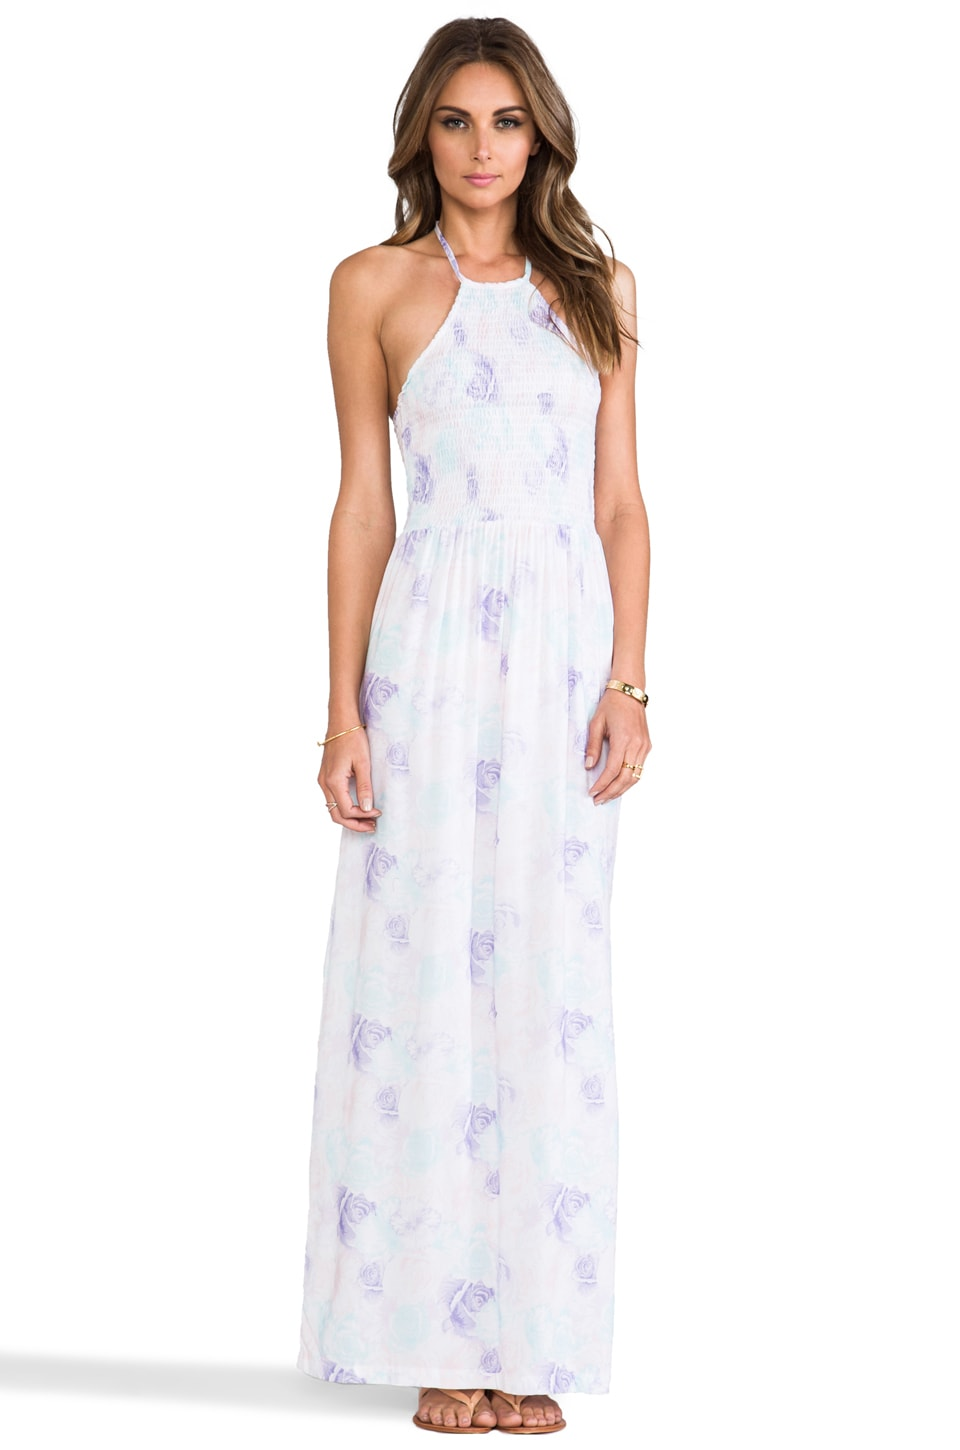 Nookie Beach Hermosas Flores Maxi Dress in White